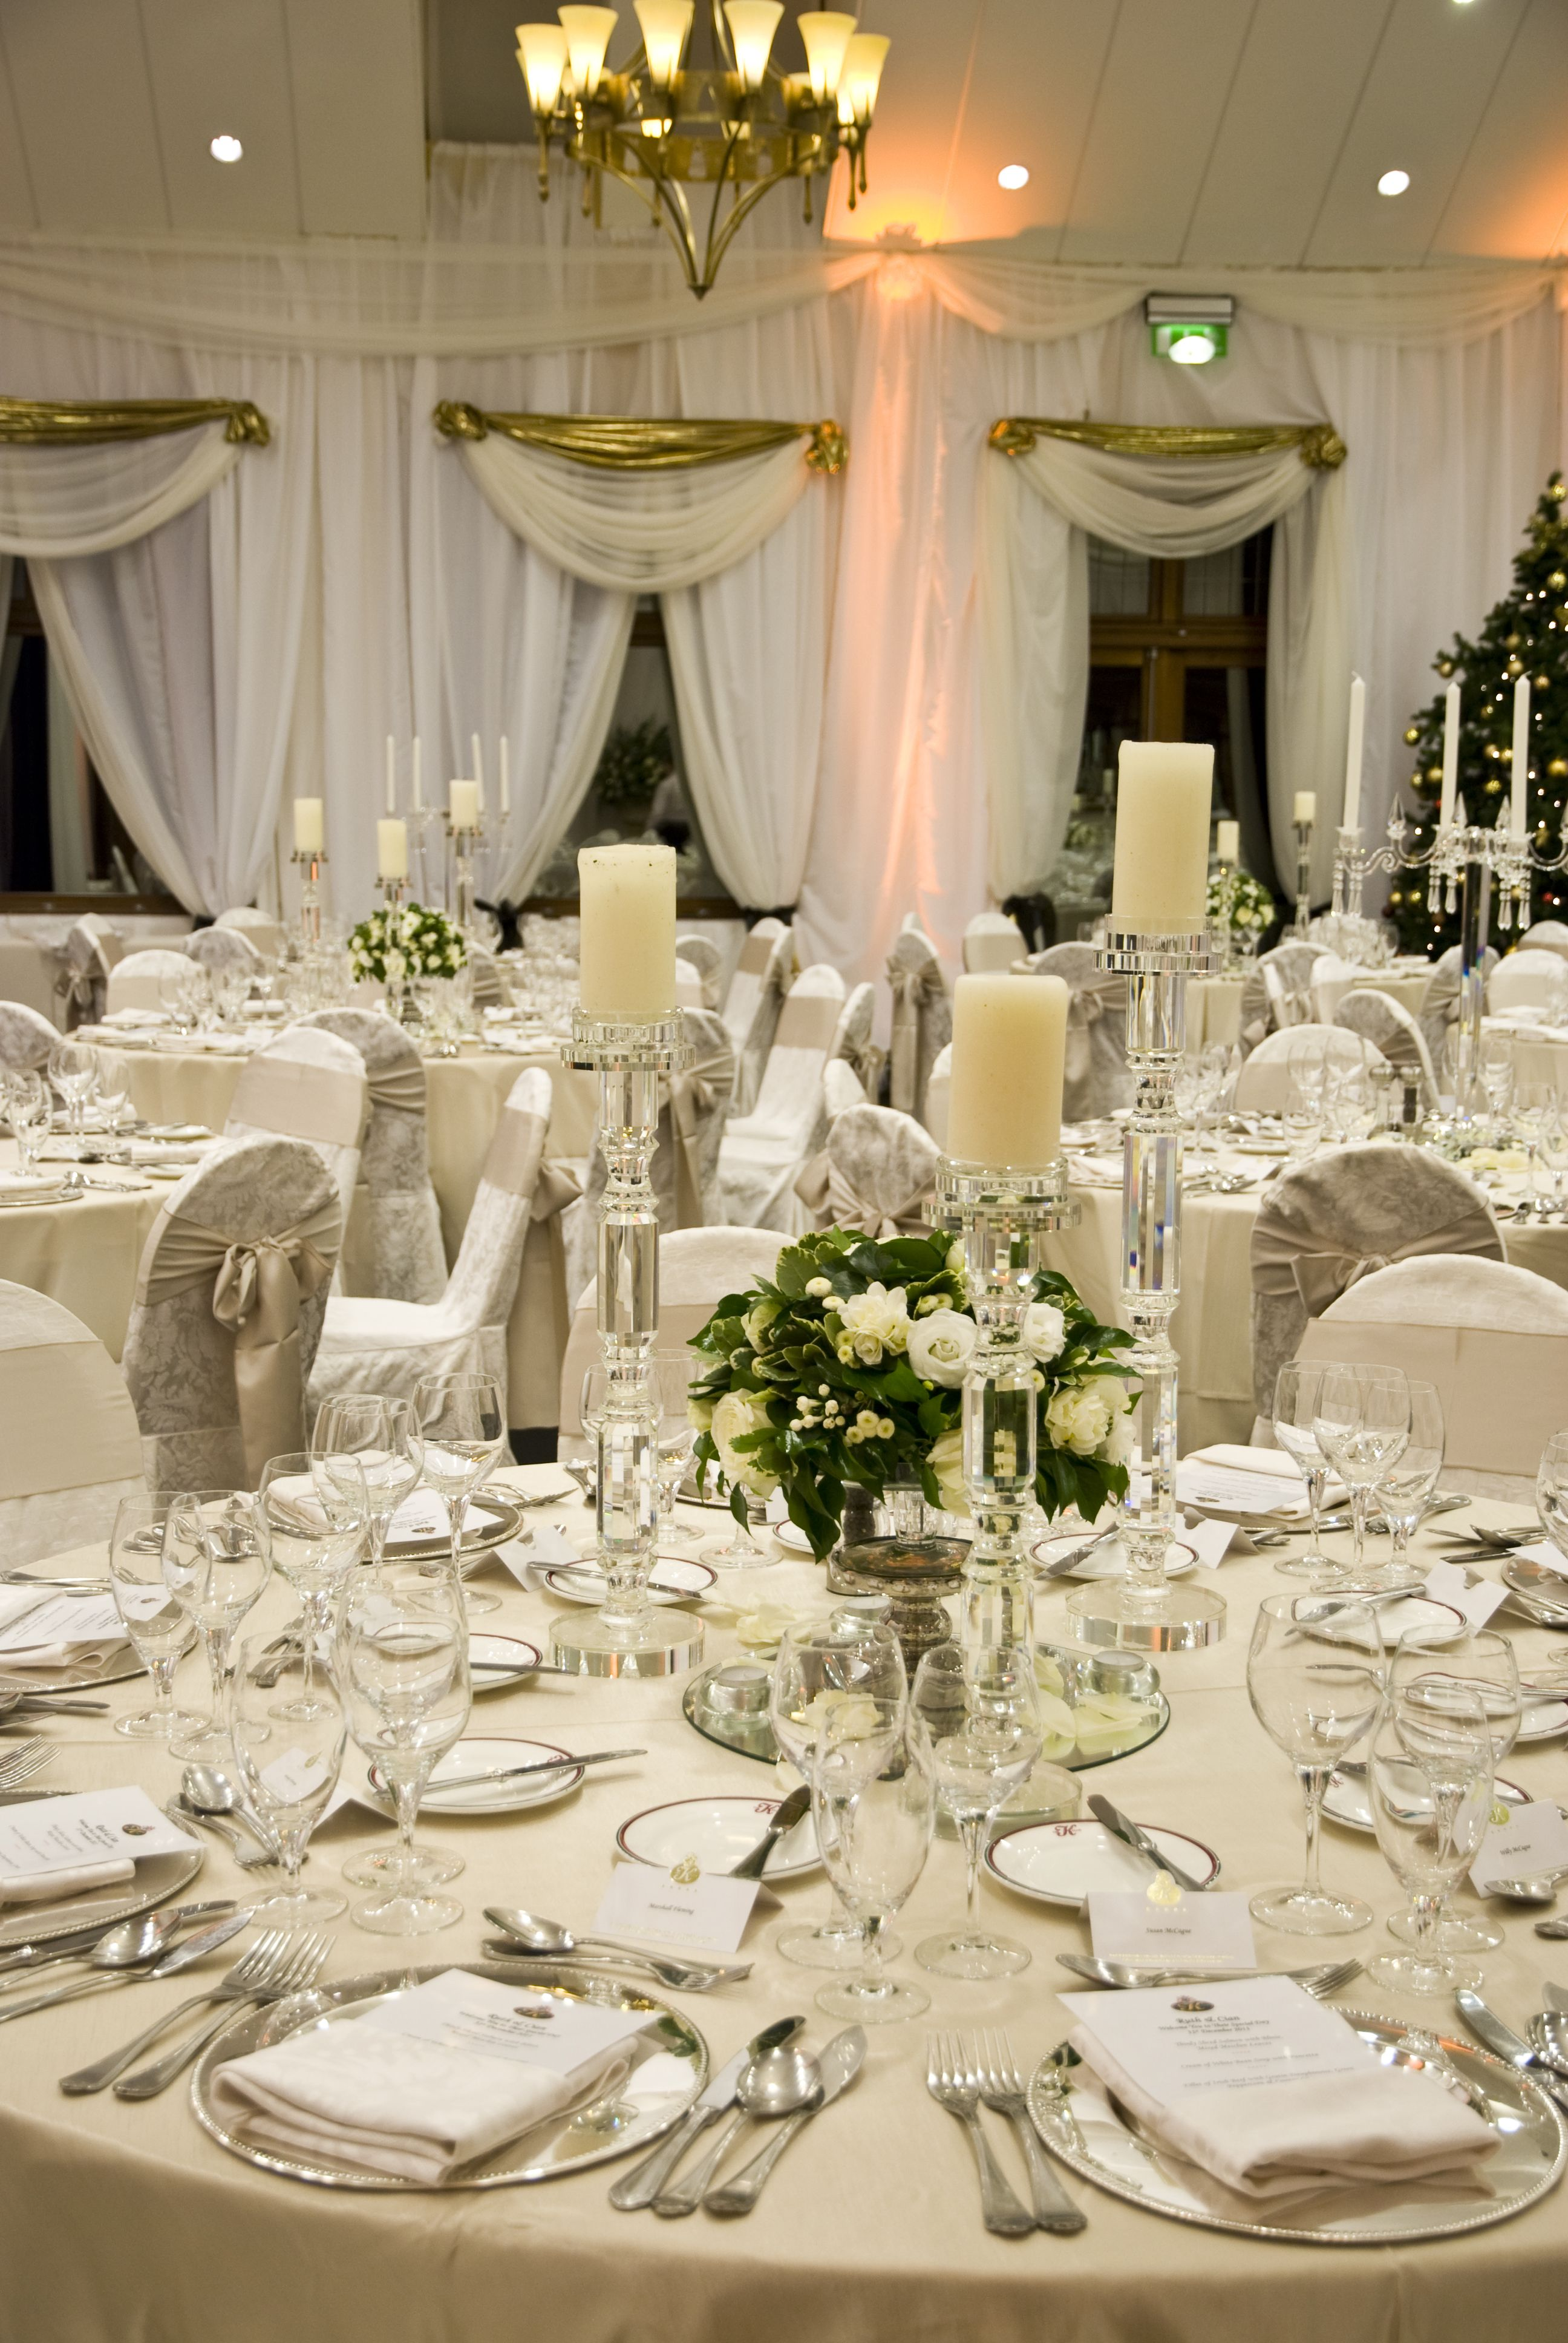 A gorgeous wedding table setting in The K Club The